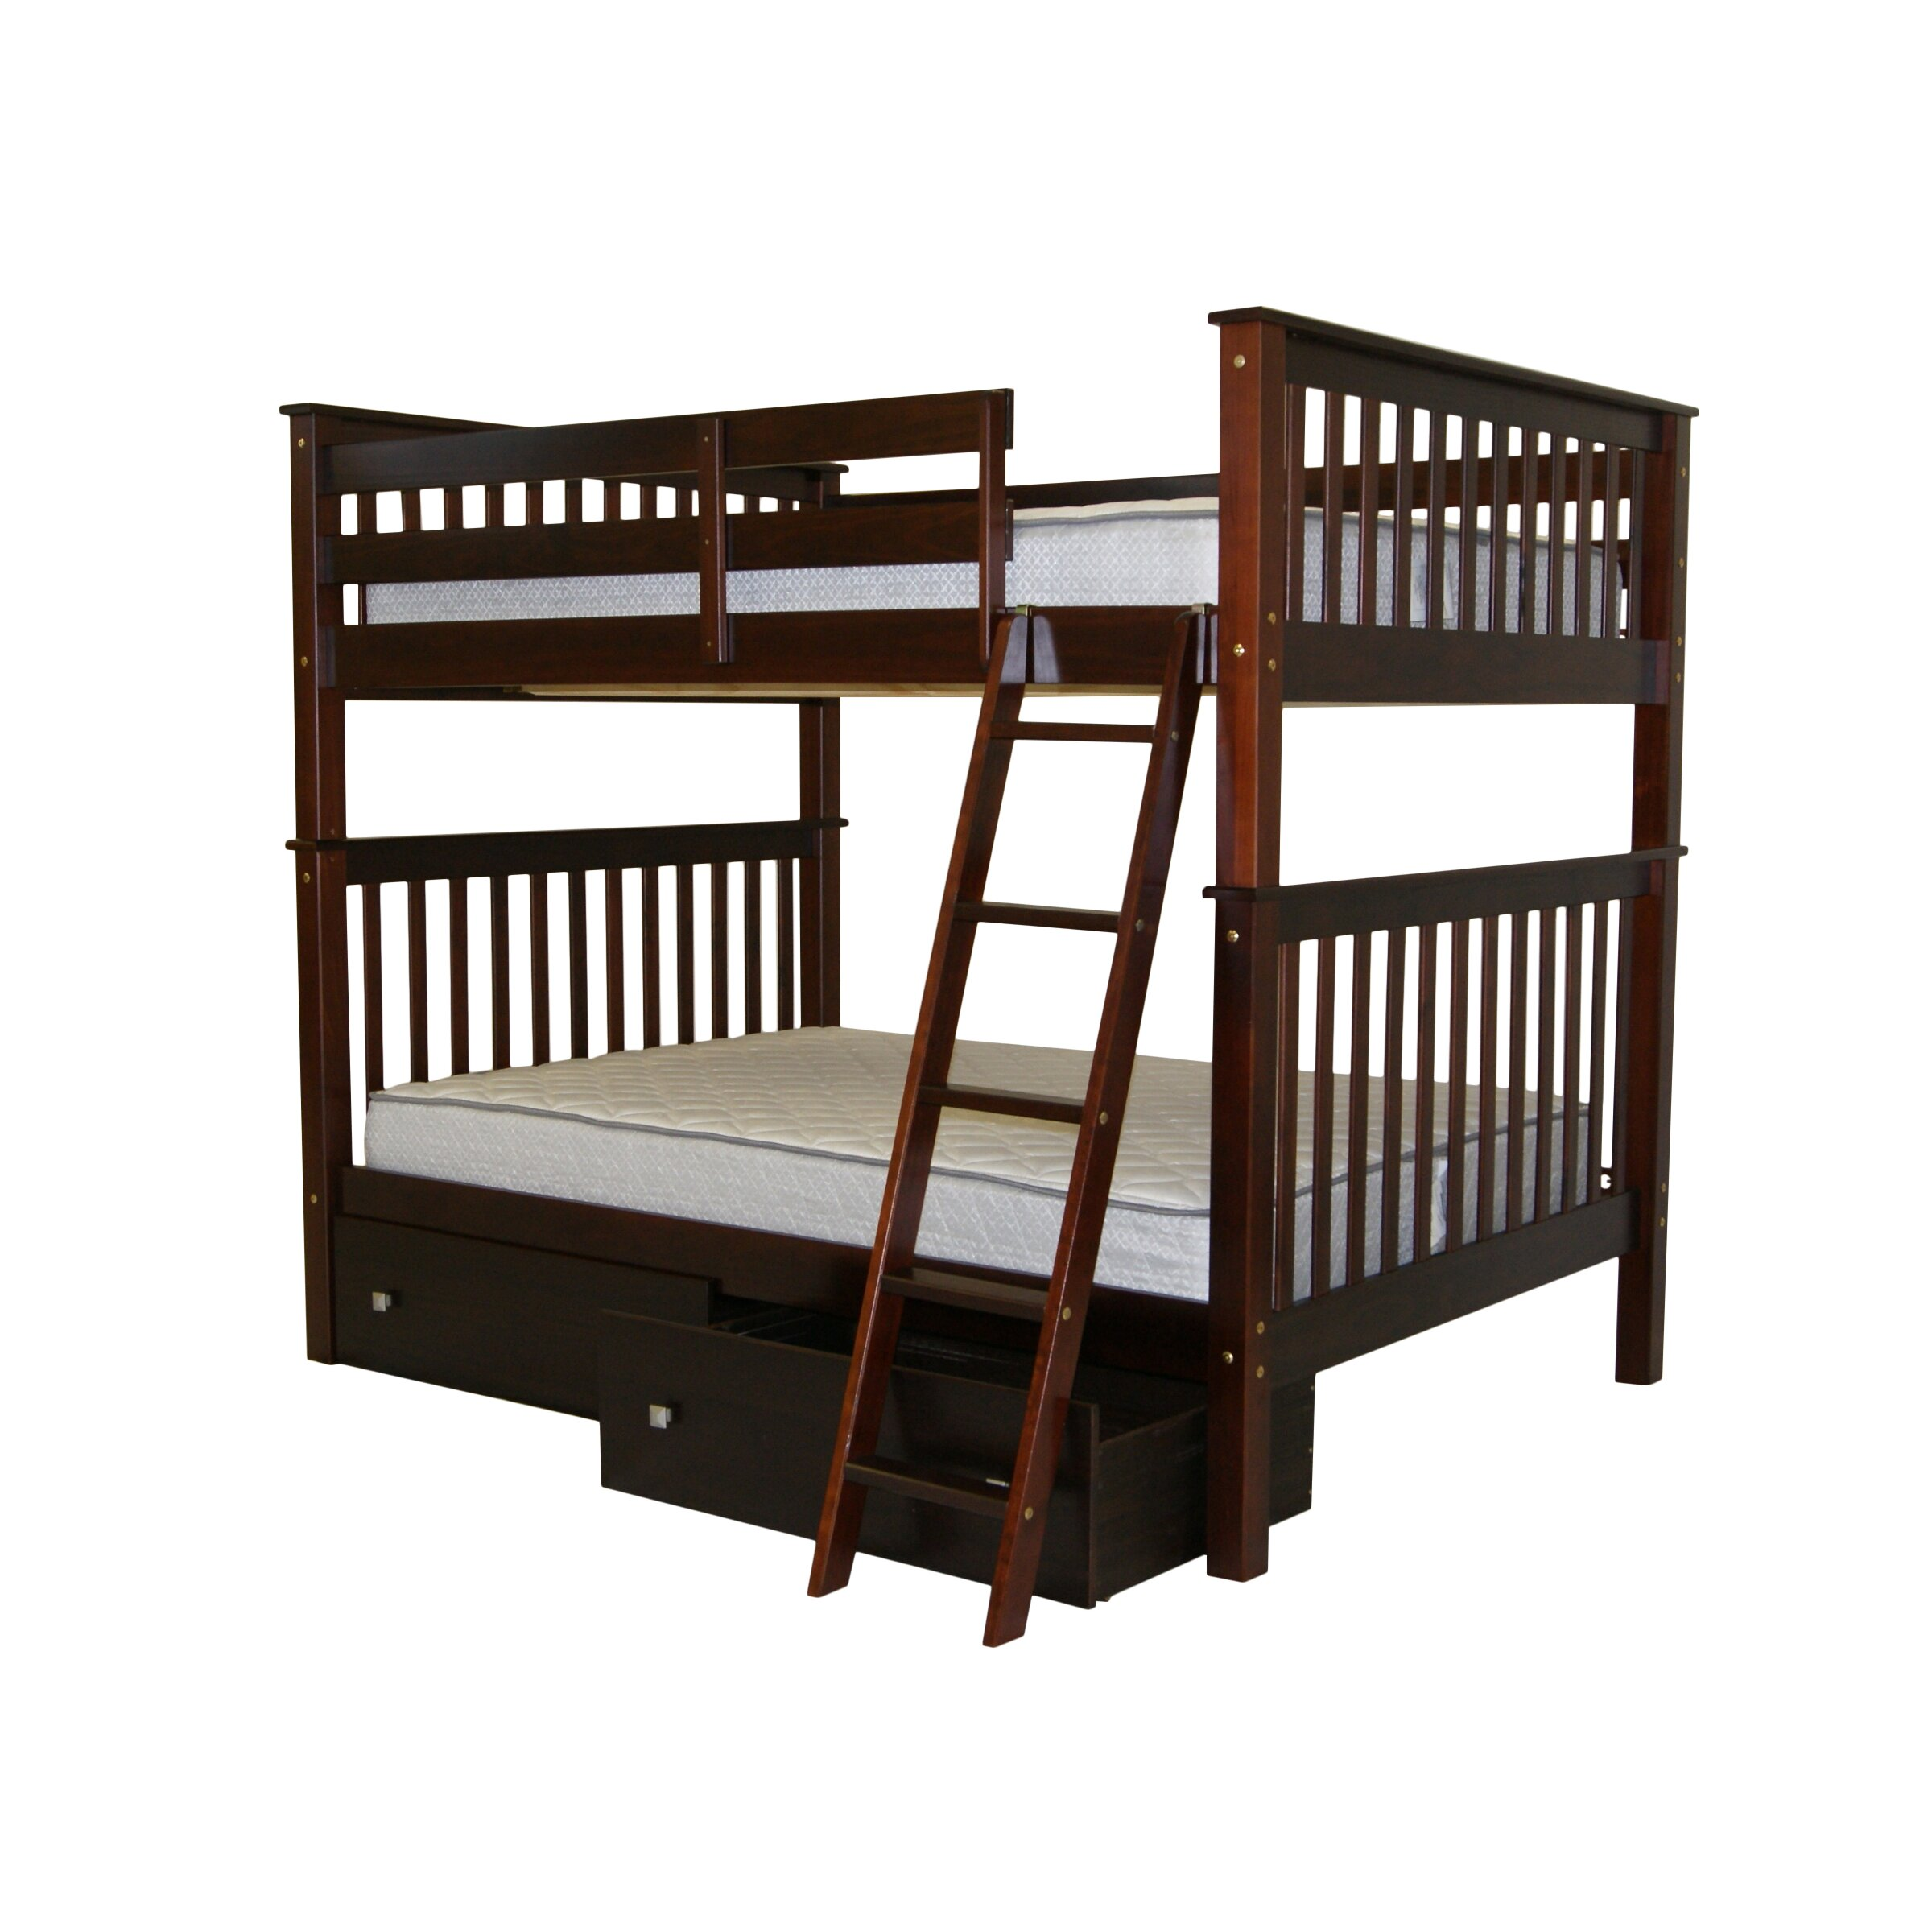 bedz king mission full over full bunk bed with full. Black Bedroom Furniture Sets. Home Design Ideas